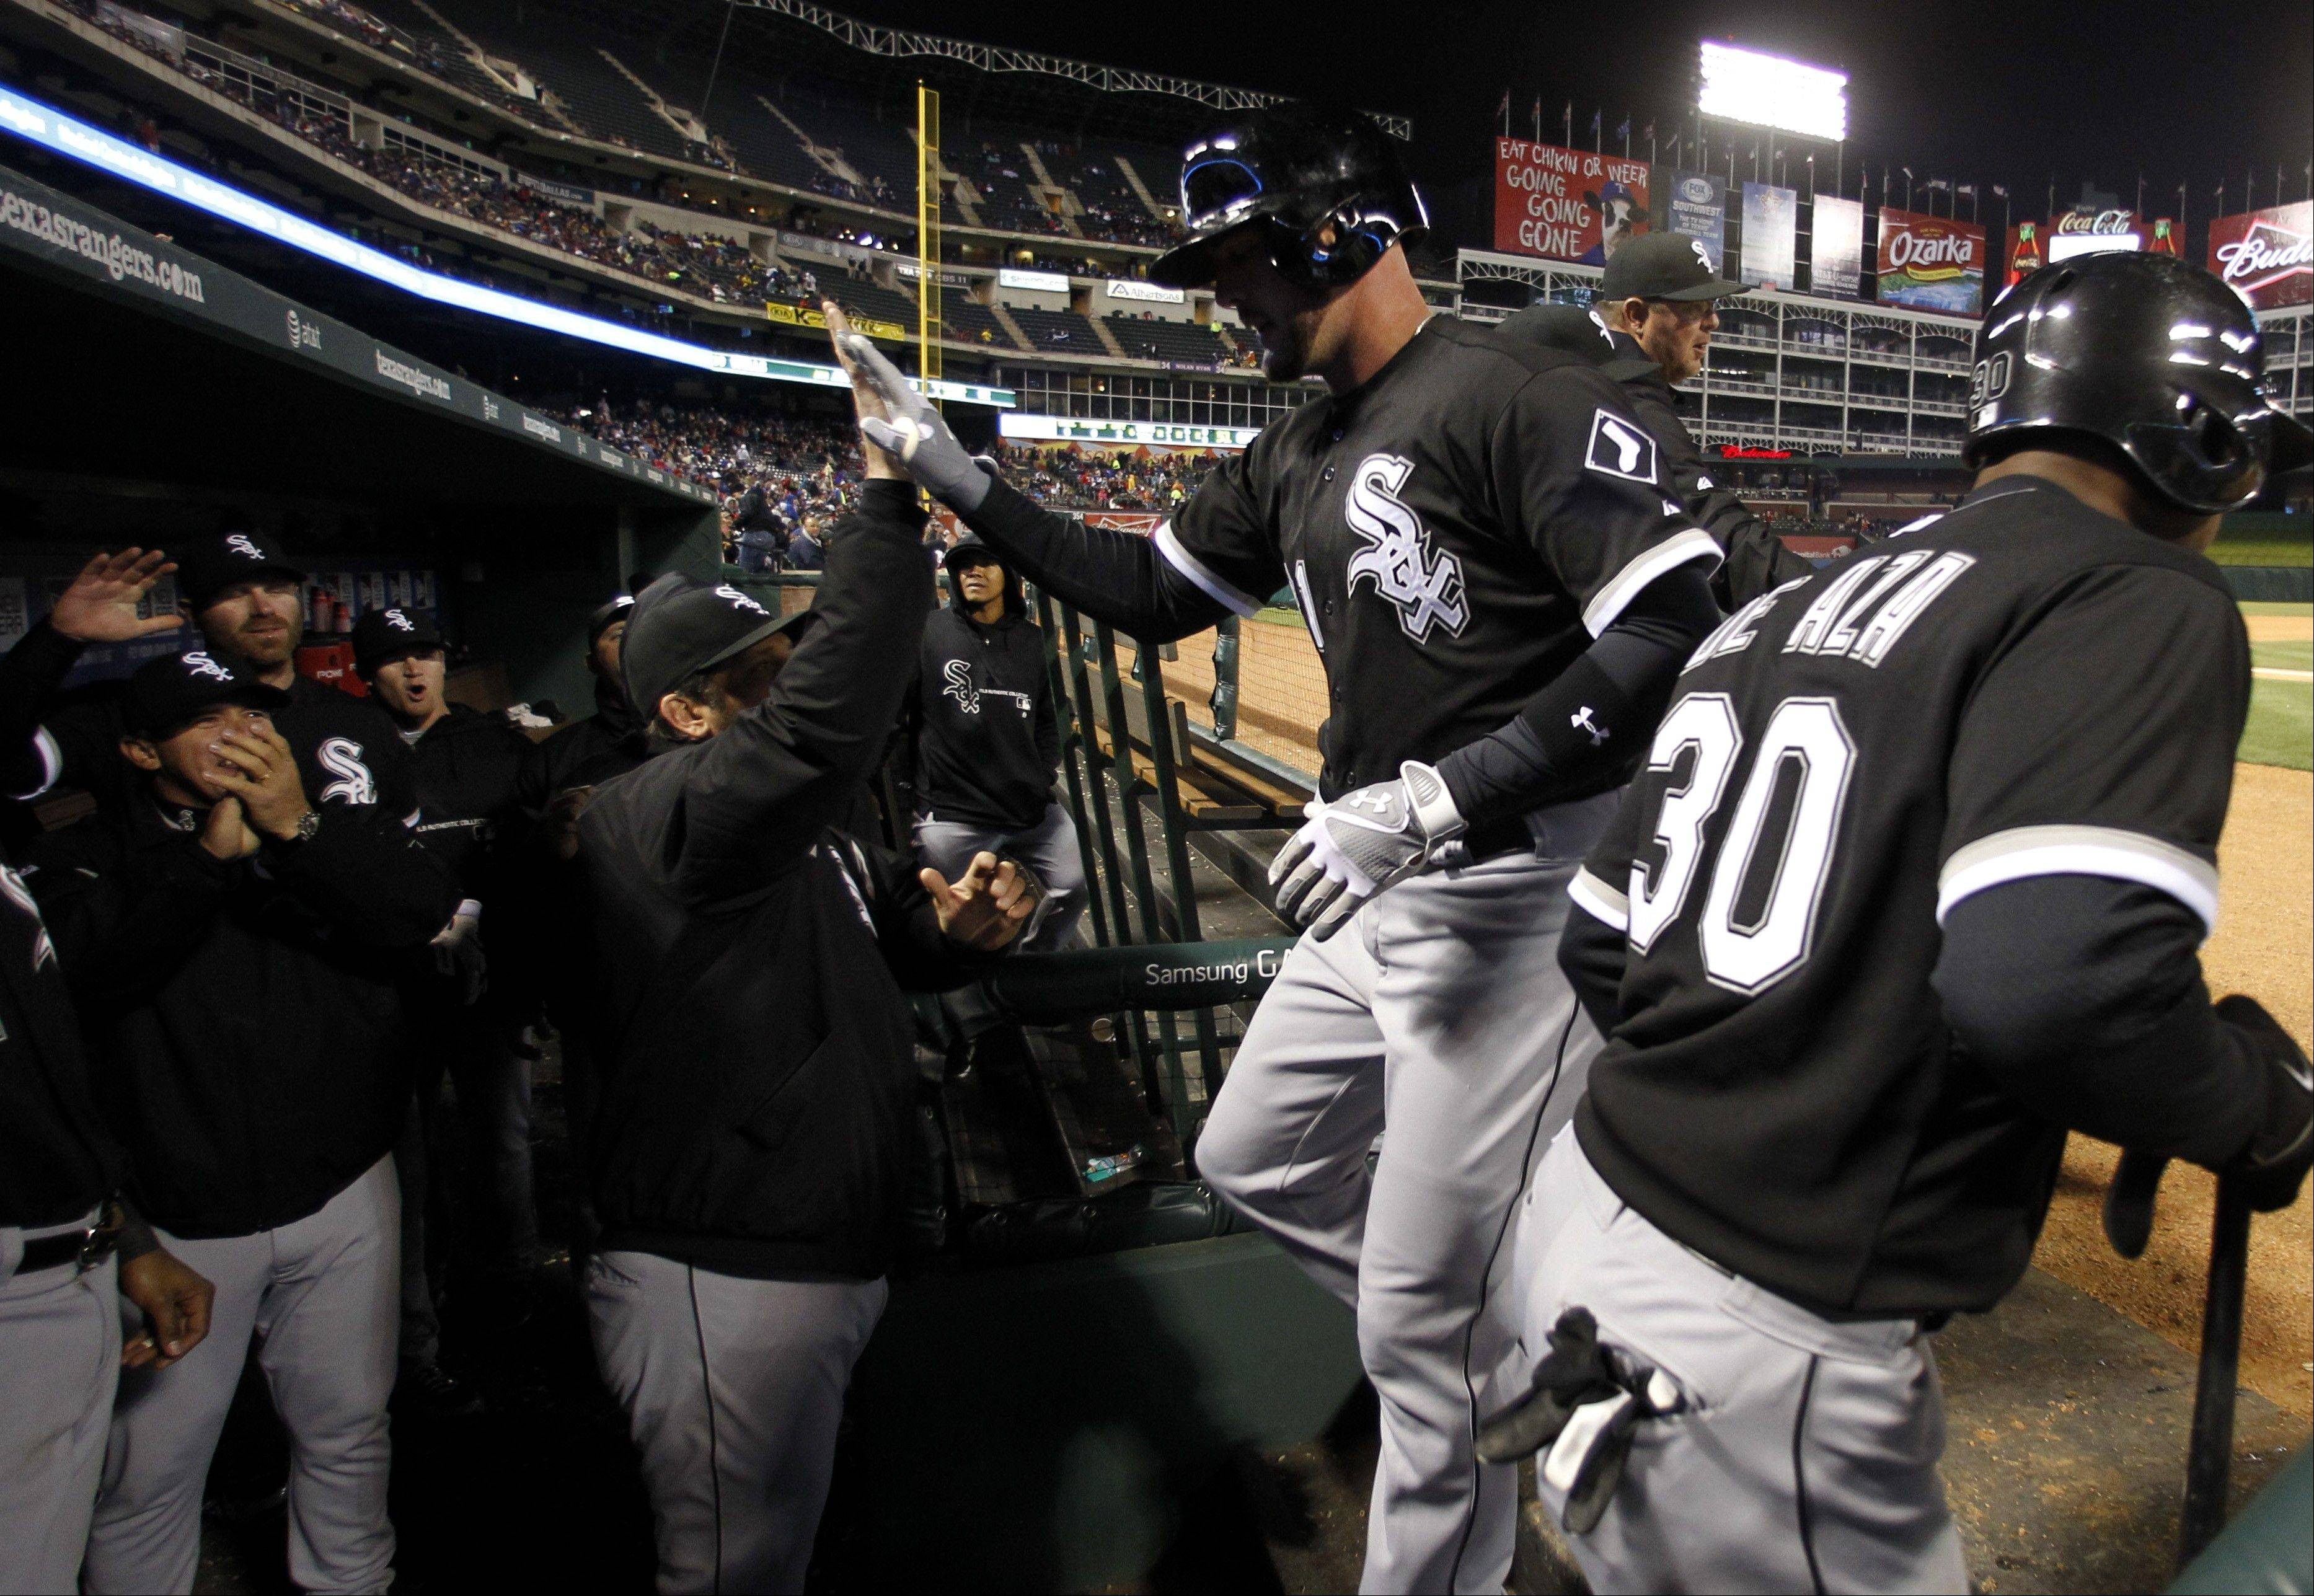 The White Sox�s Tyler Flowers, second from right, is congratulated as he reaches the dugout following his three-run home run off Texas Rangers� Justin Grimm in the sixth inning of a baseball game on Thursday in Arlington. The hit also scored Conor Gillaspie and Alexei Ramirez.